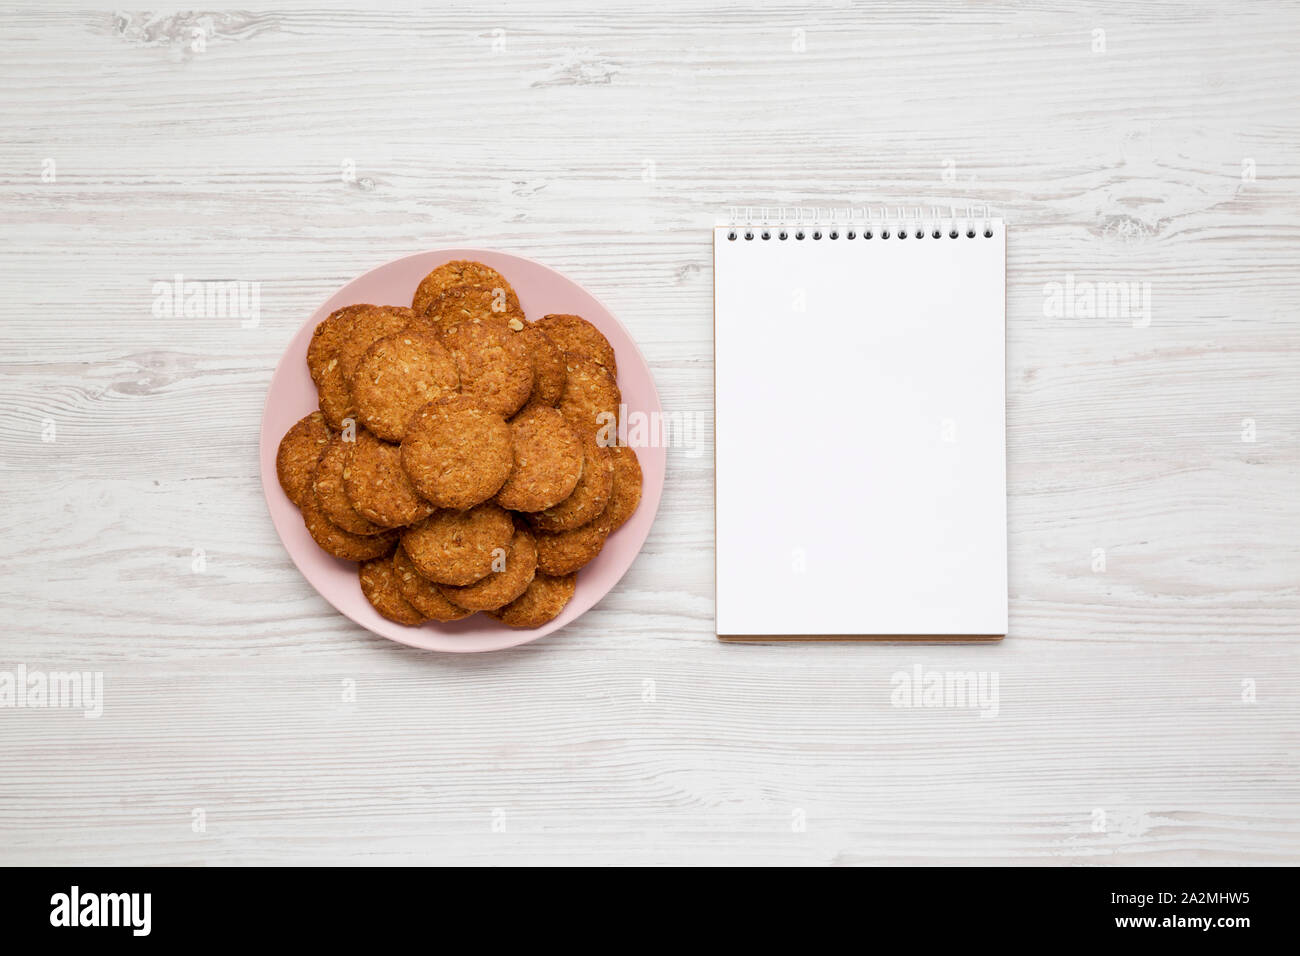 Cereal cookies on a pink plate, blank notepad on a white wooden surface, overhead view. Flat lay, top view, from above. Stock Photo